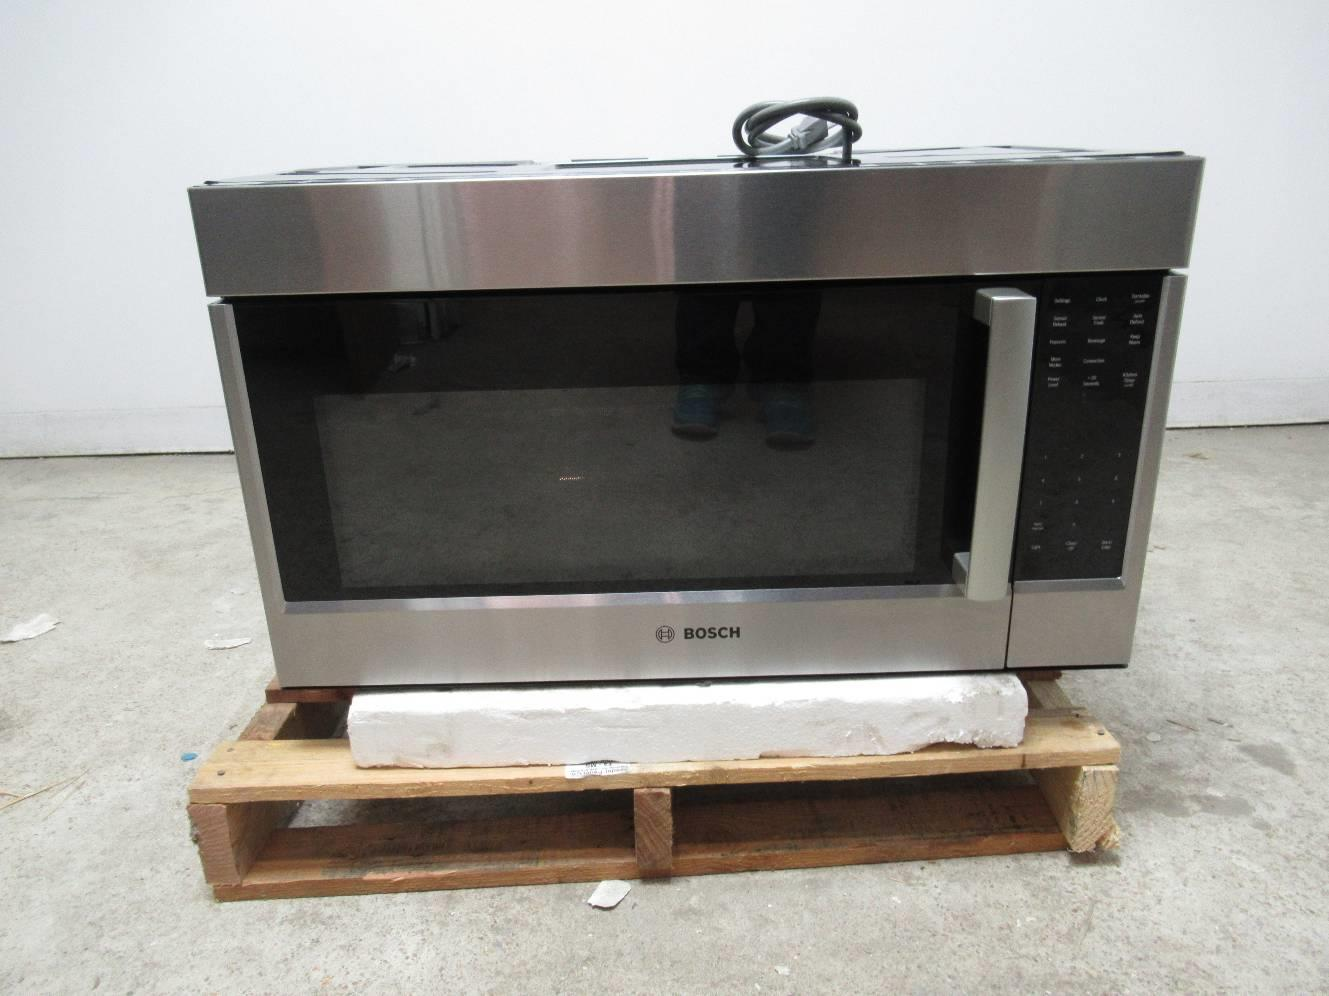 Bosch 800 30 1 8 Cu Ft Over The Range Convection Microwave Hmv8053u Images